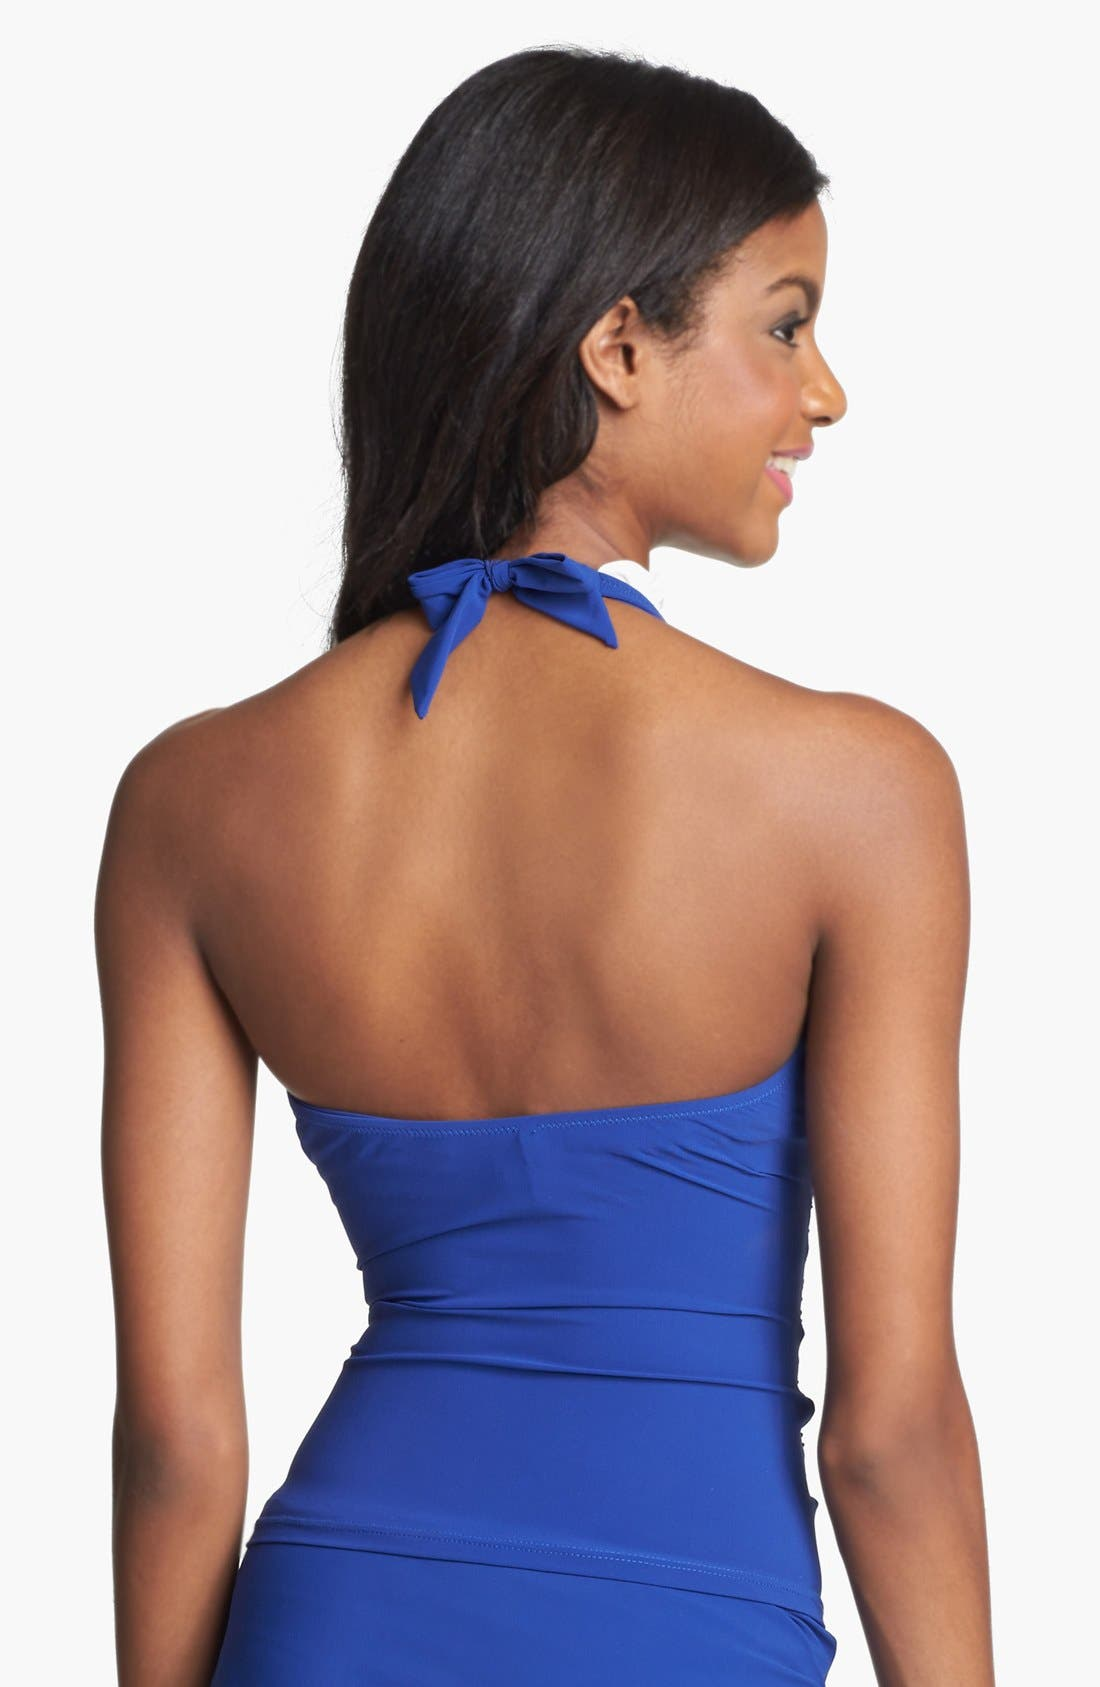 Alternate Image 2  - Profile by Gottex 'Black Tie' Halter Tankini Top (D-Cup)